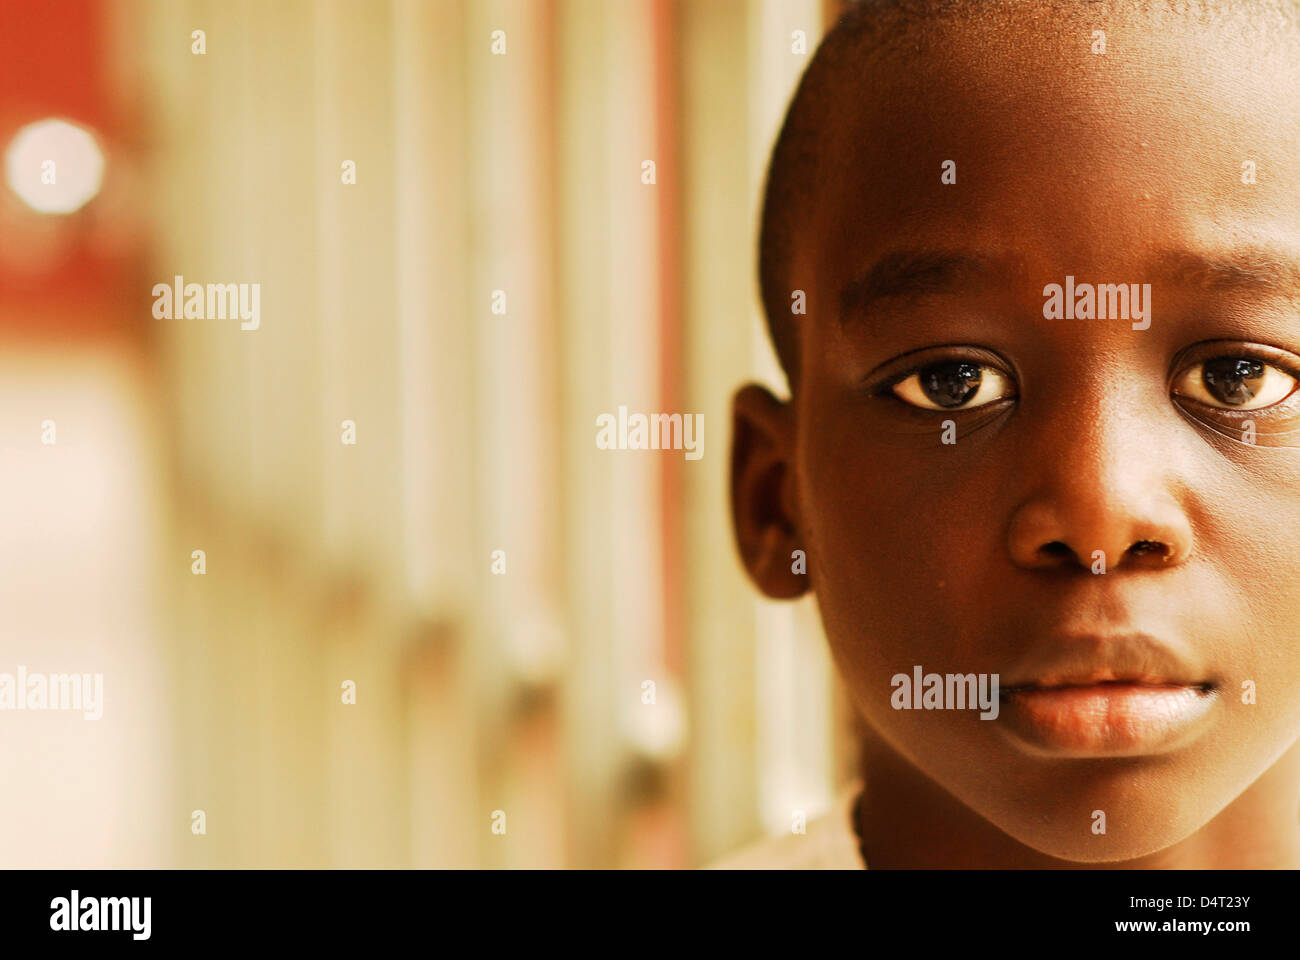 Africa, Angola, Luanda, close-up portrait of a bald African boy in contemplation. (MR) - Stock Image